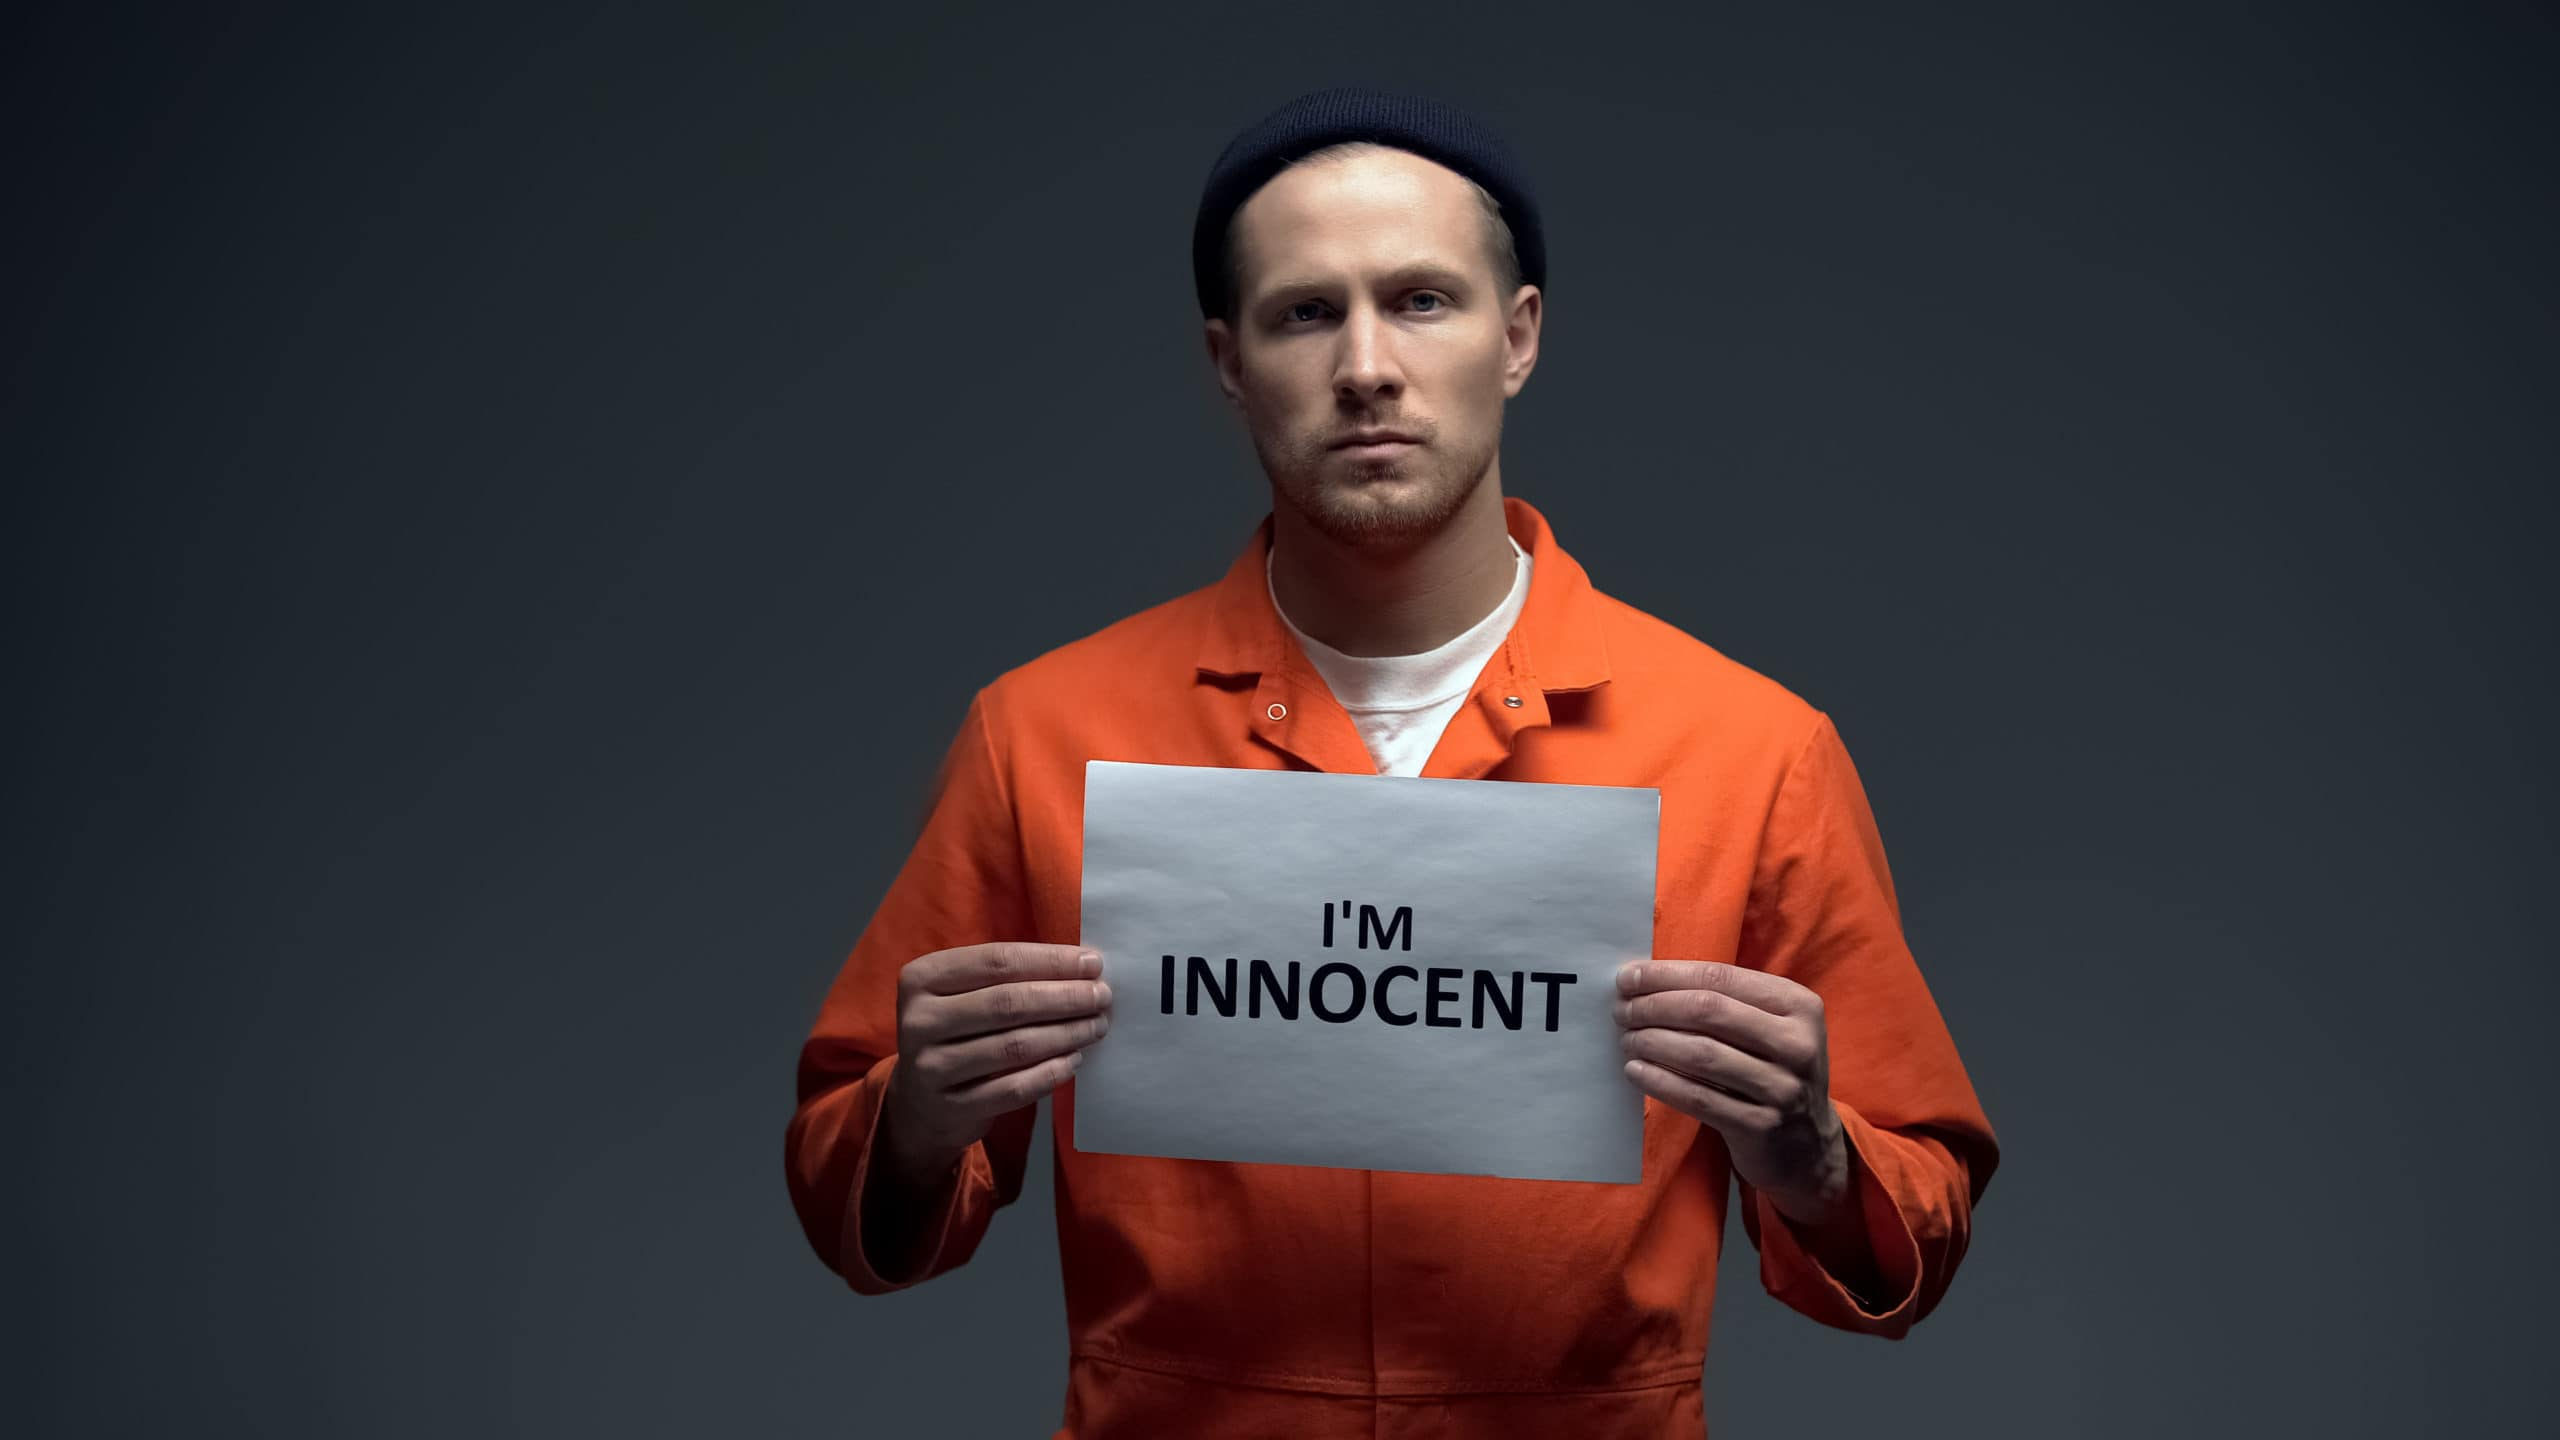 European imprisoned male holding I am innocent sign in cell, asking for justice